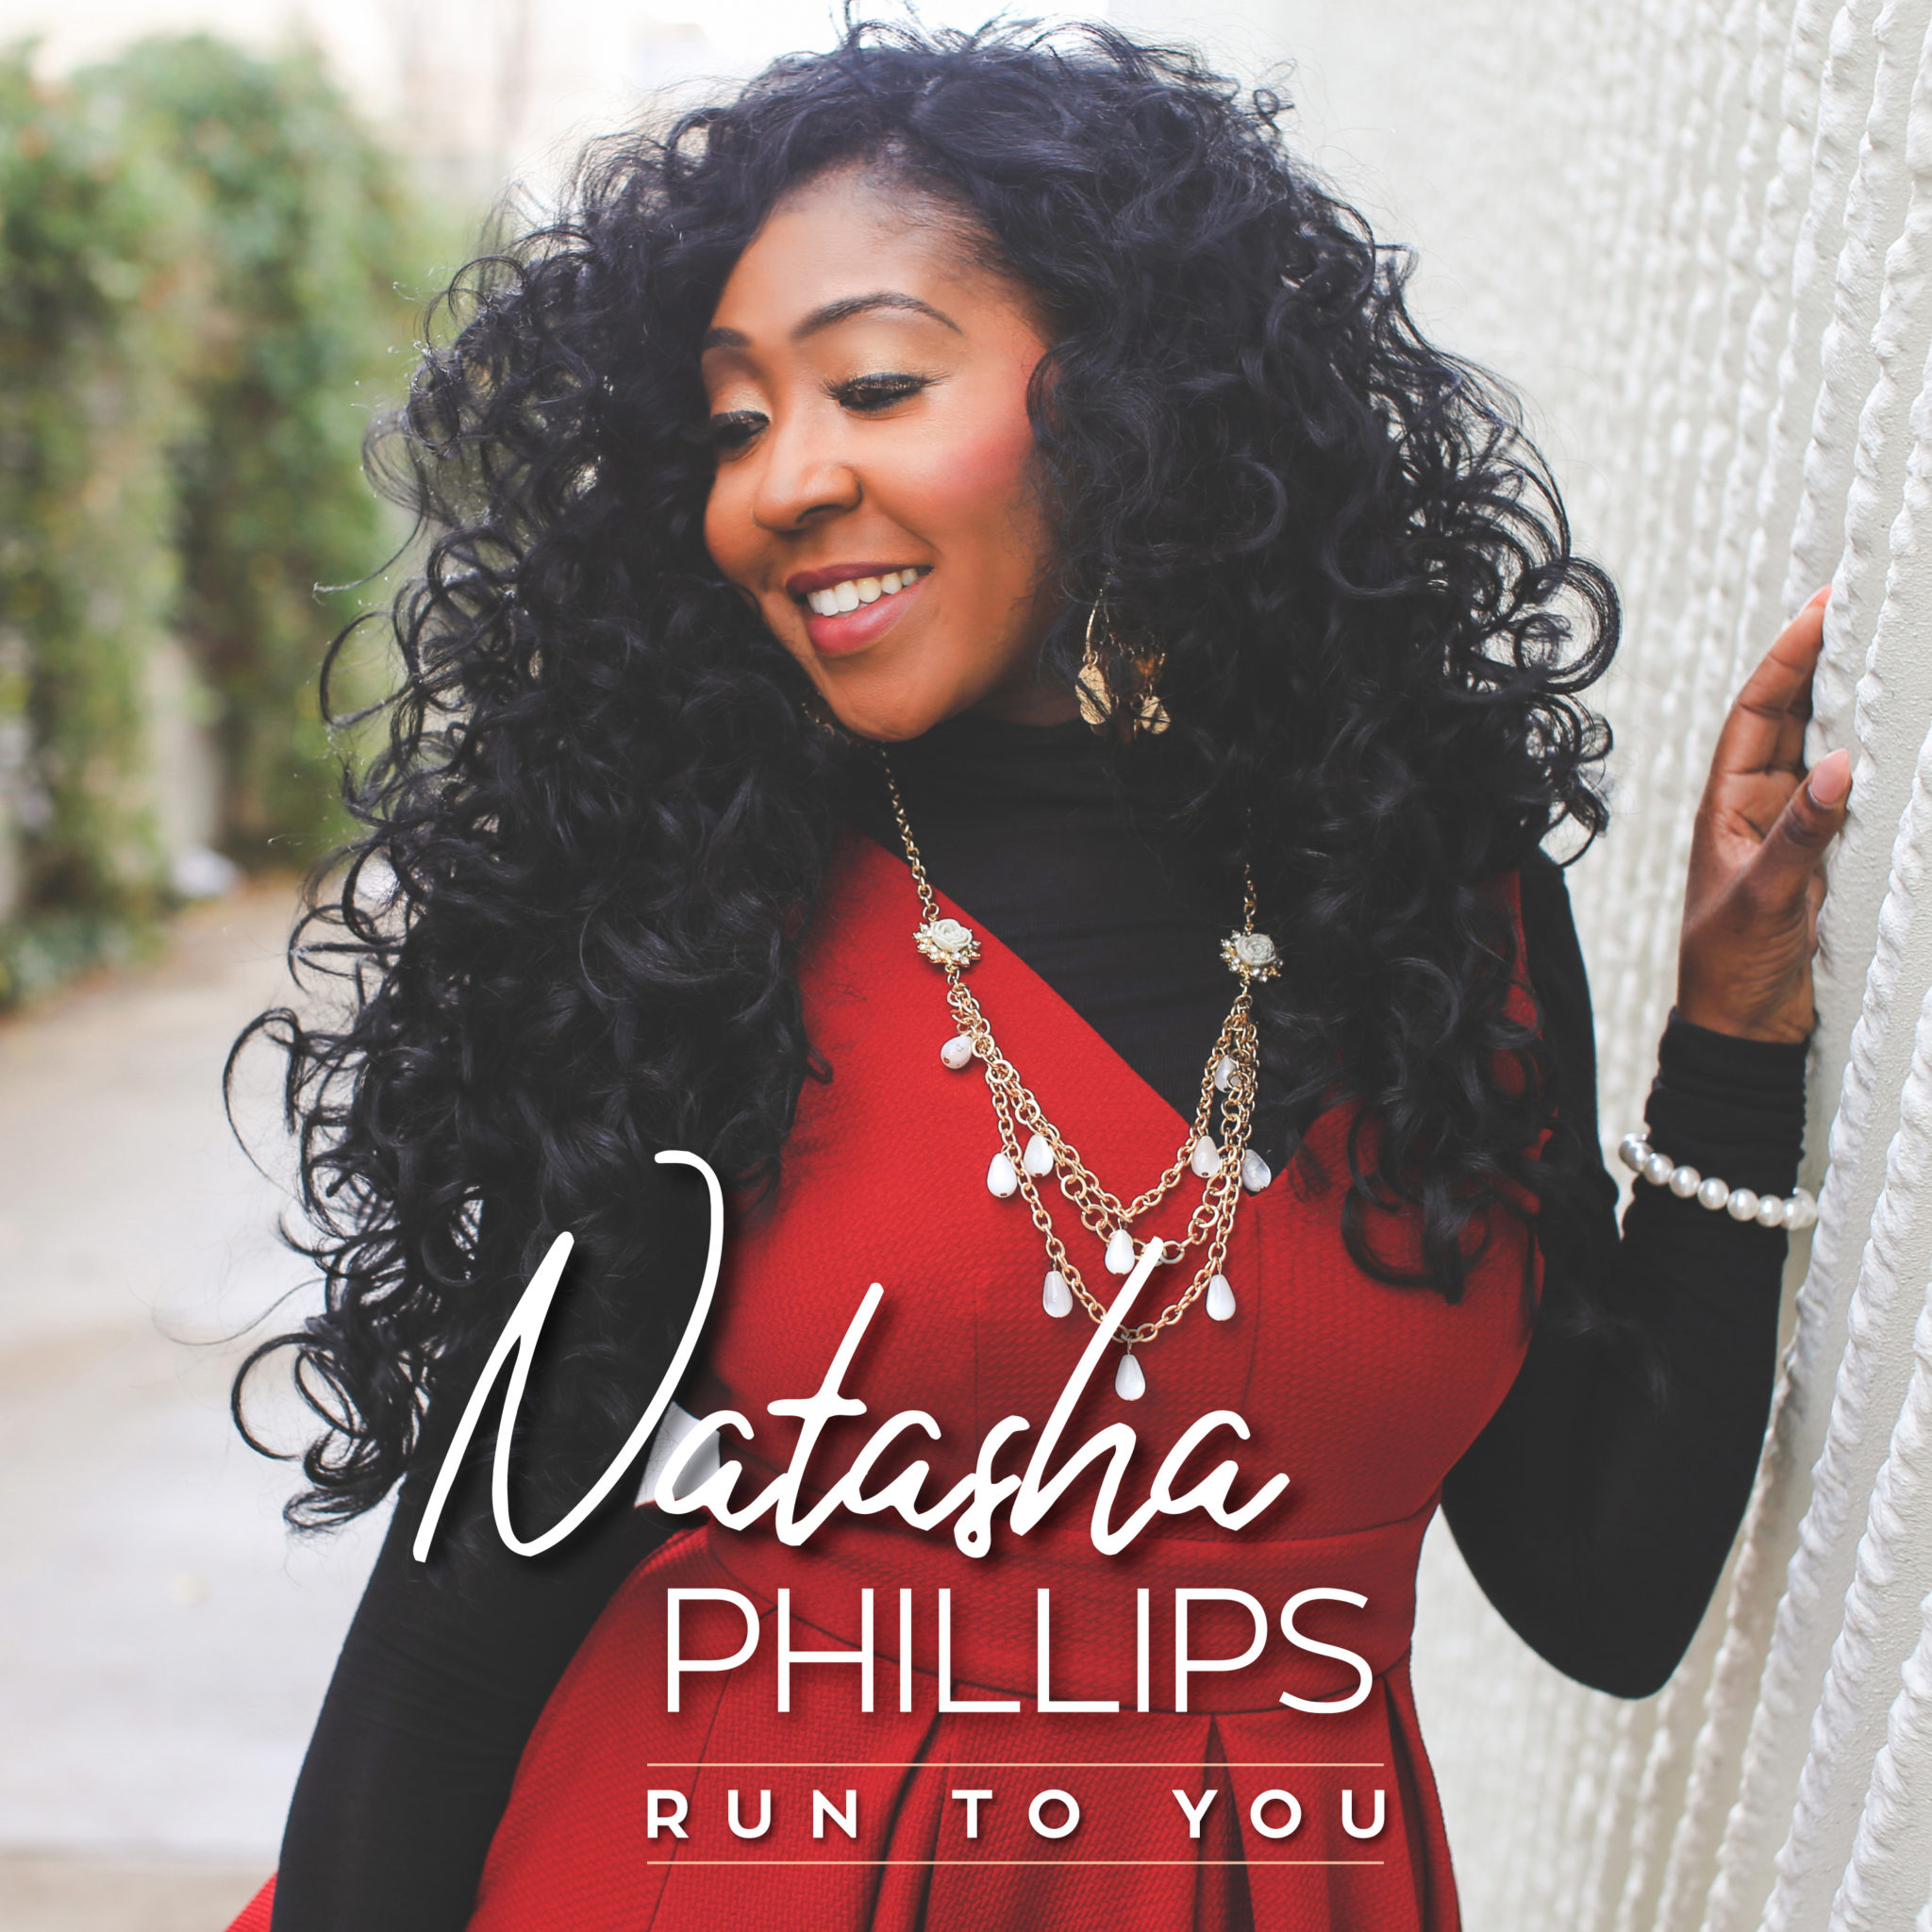 ATLANTA-BASED ARTIST NATASHA PHILLIPS RELEASES NEW SINGLE